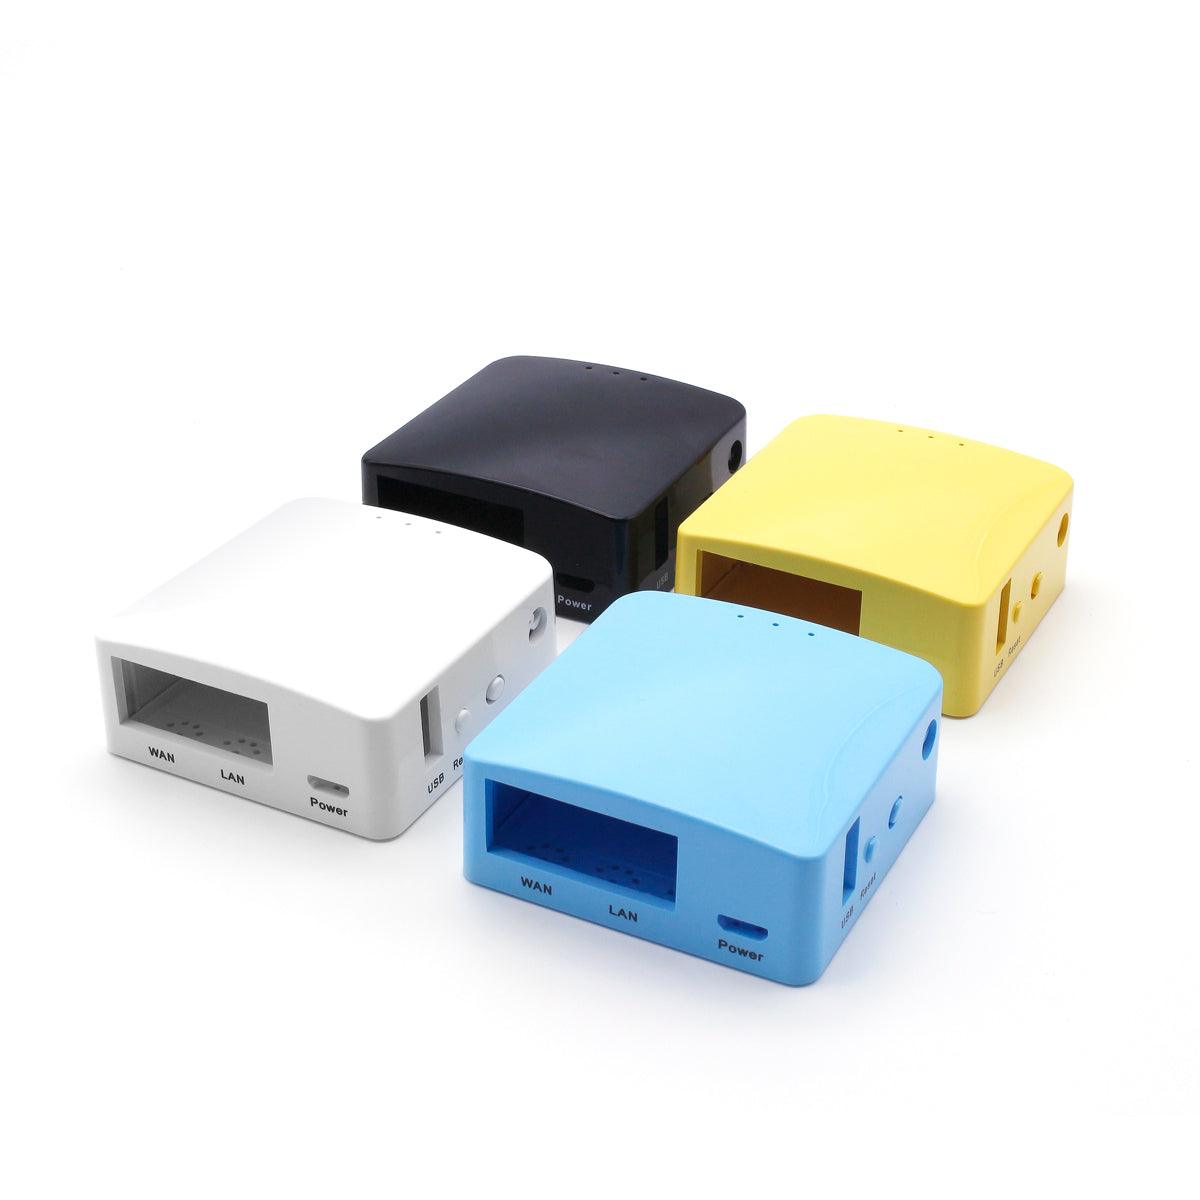 Mini Router Accessories